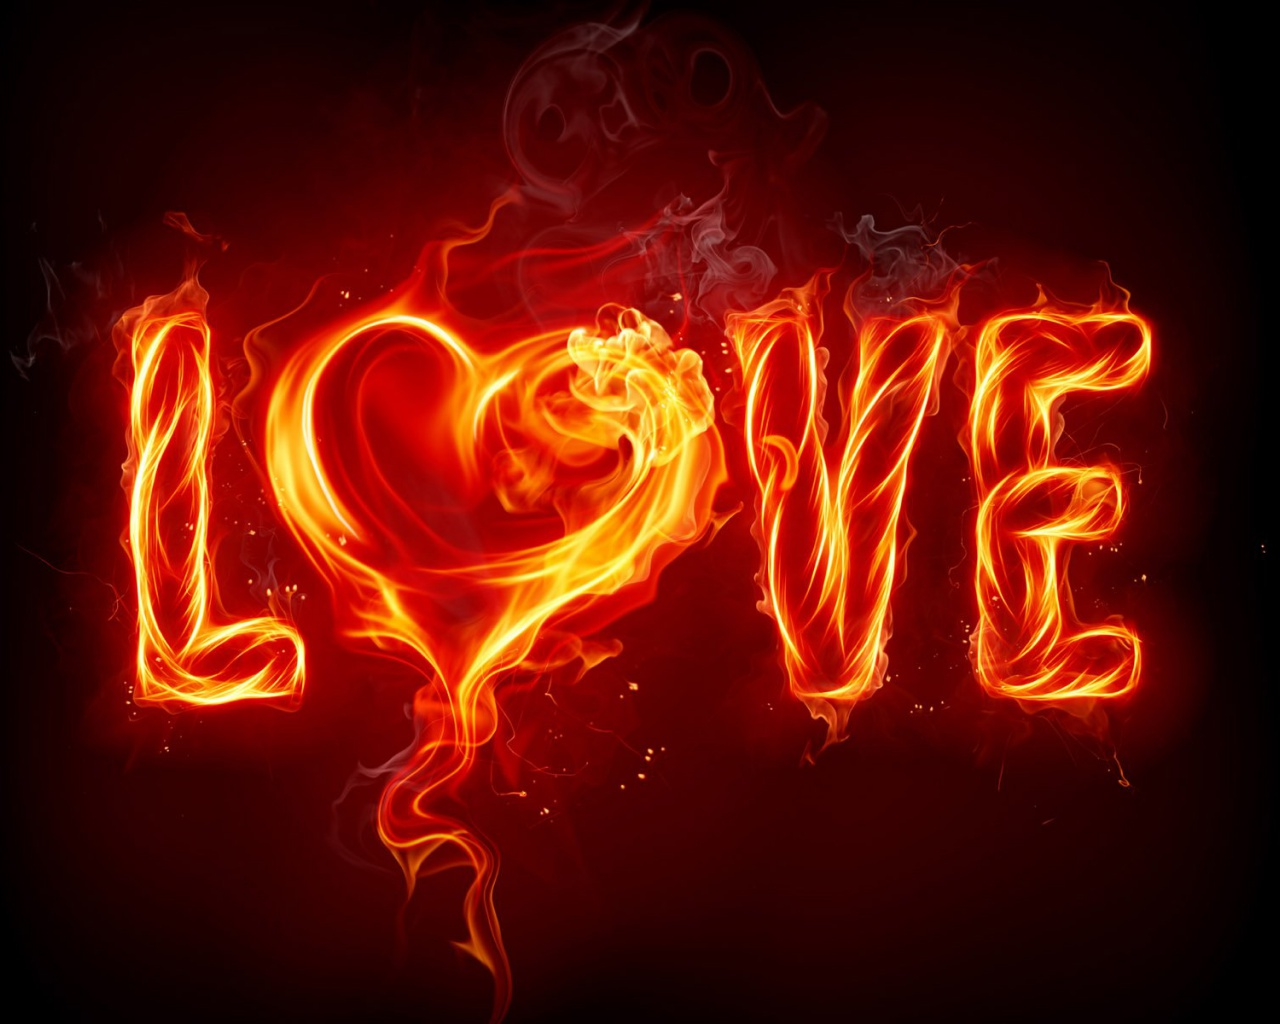 1280x1024 love fire heart abstract desktop pc and mac wallpaper